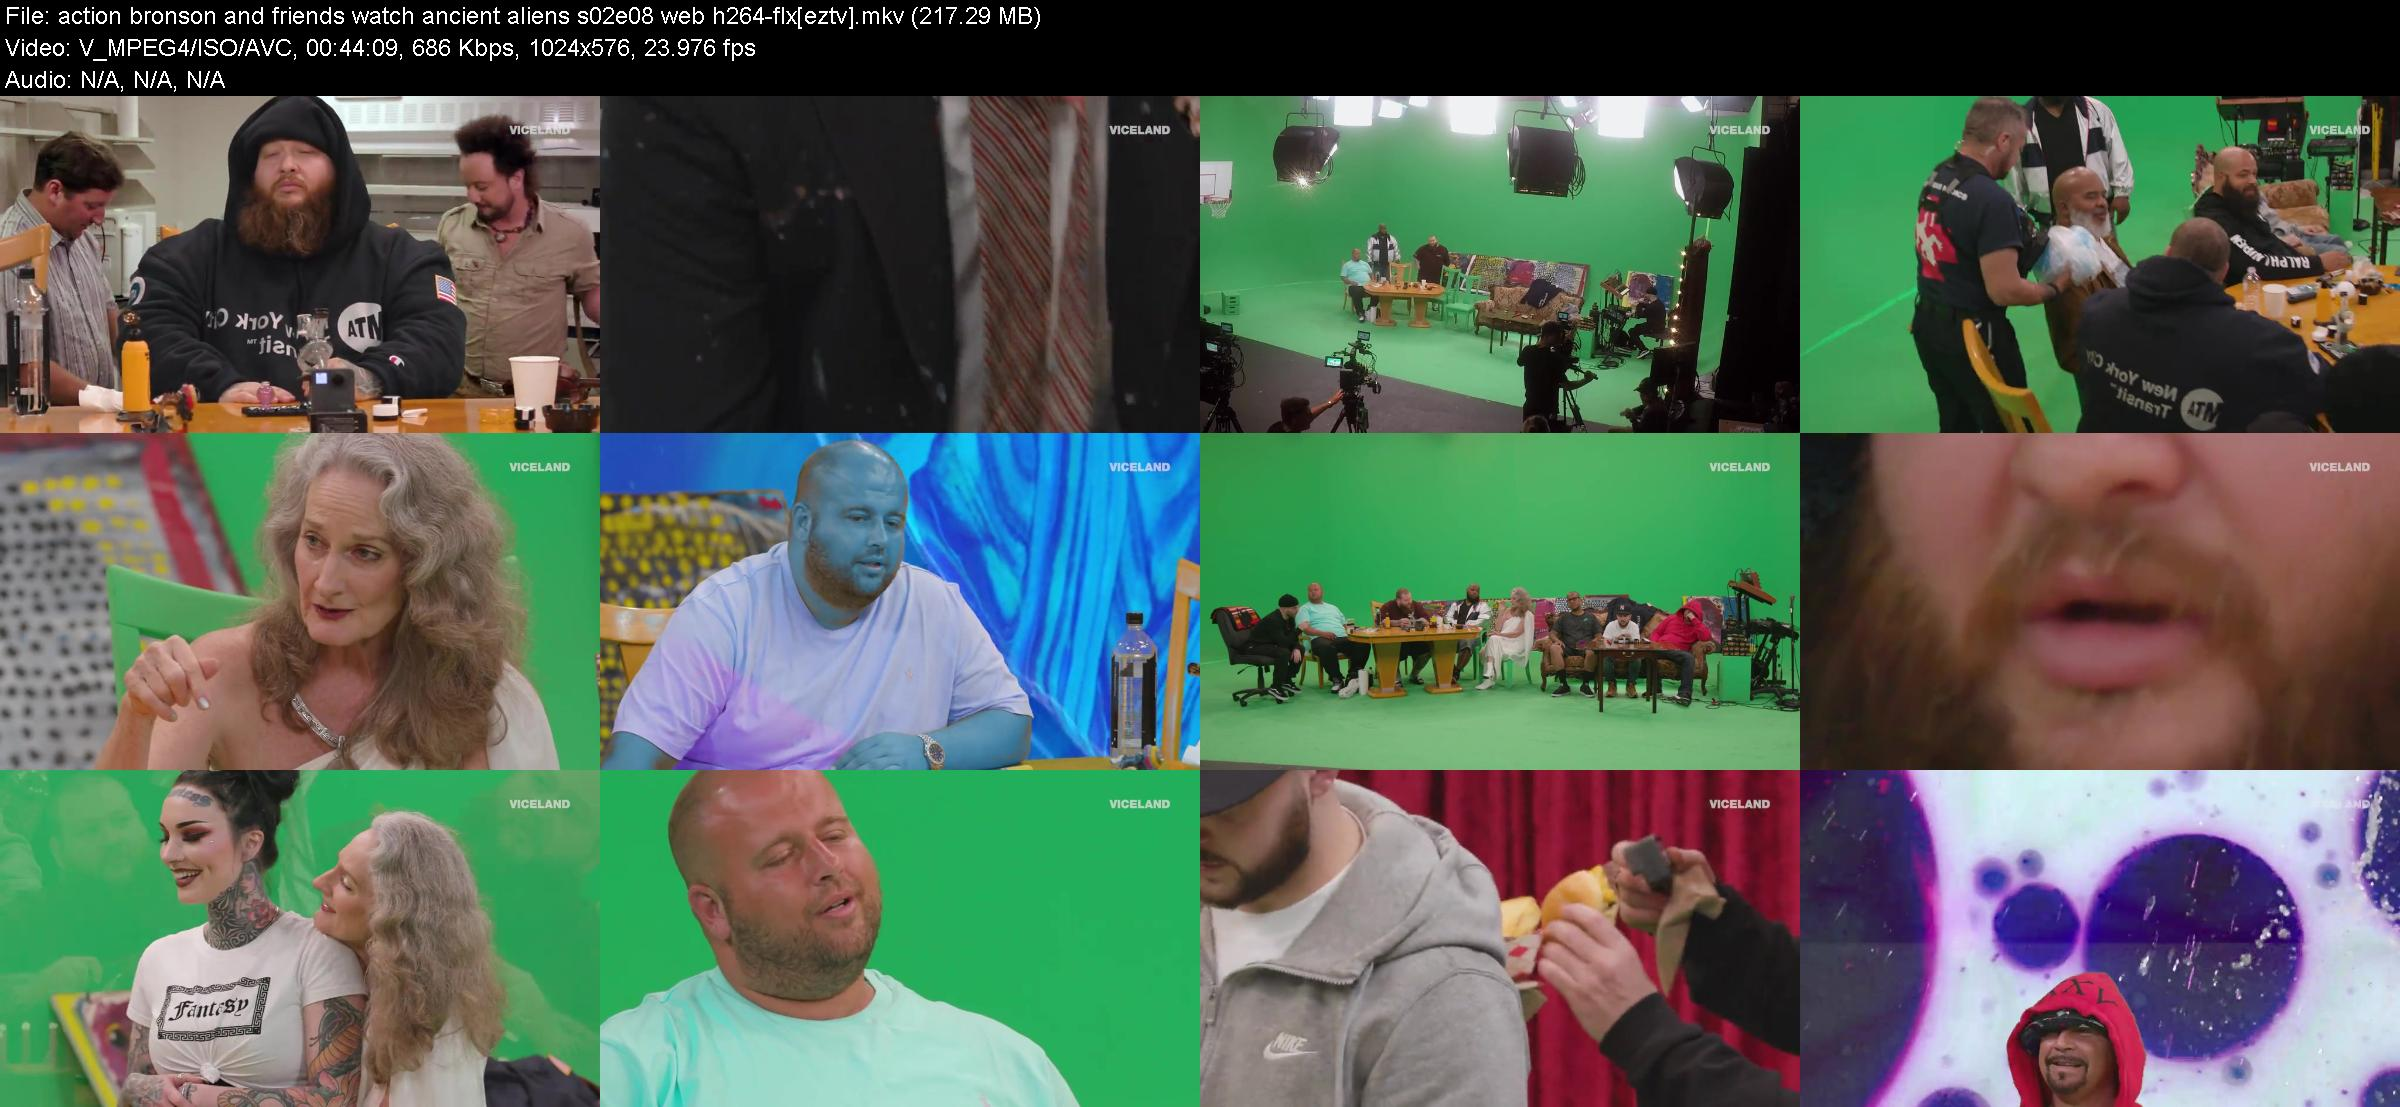 action bronson and friends watch ancient aliens s02e08 web h264-flx